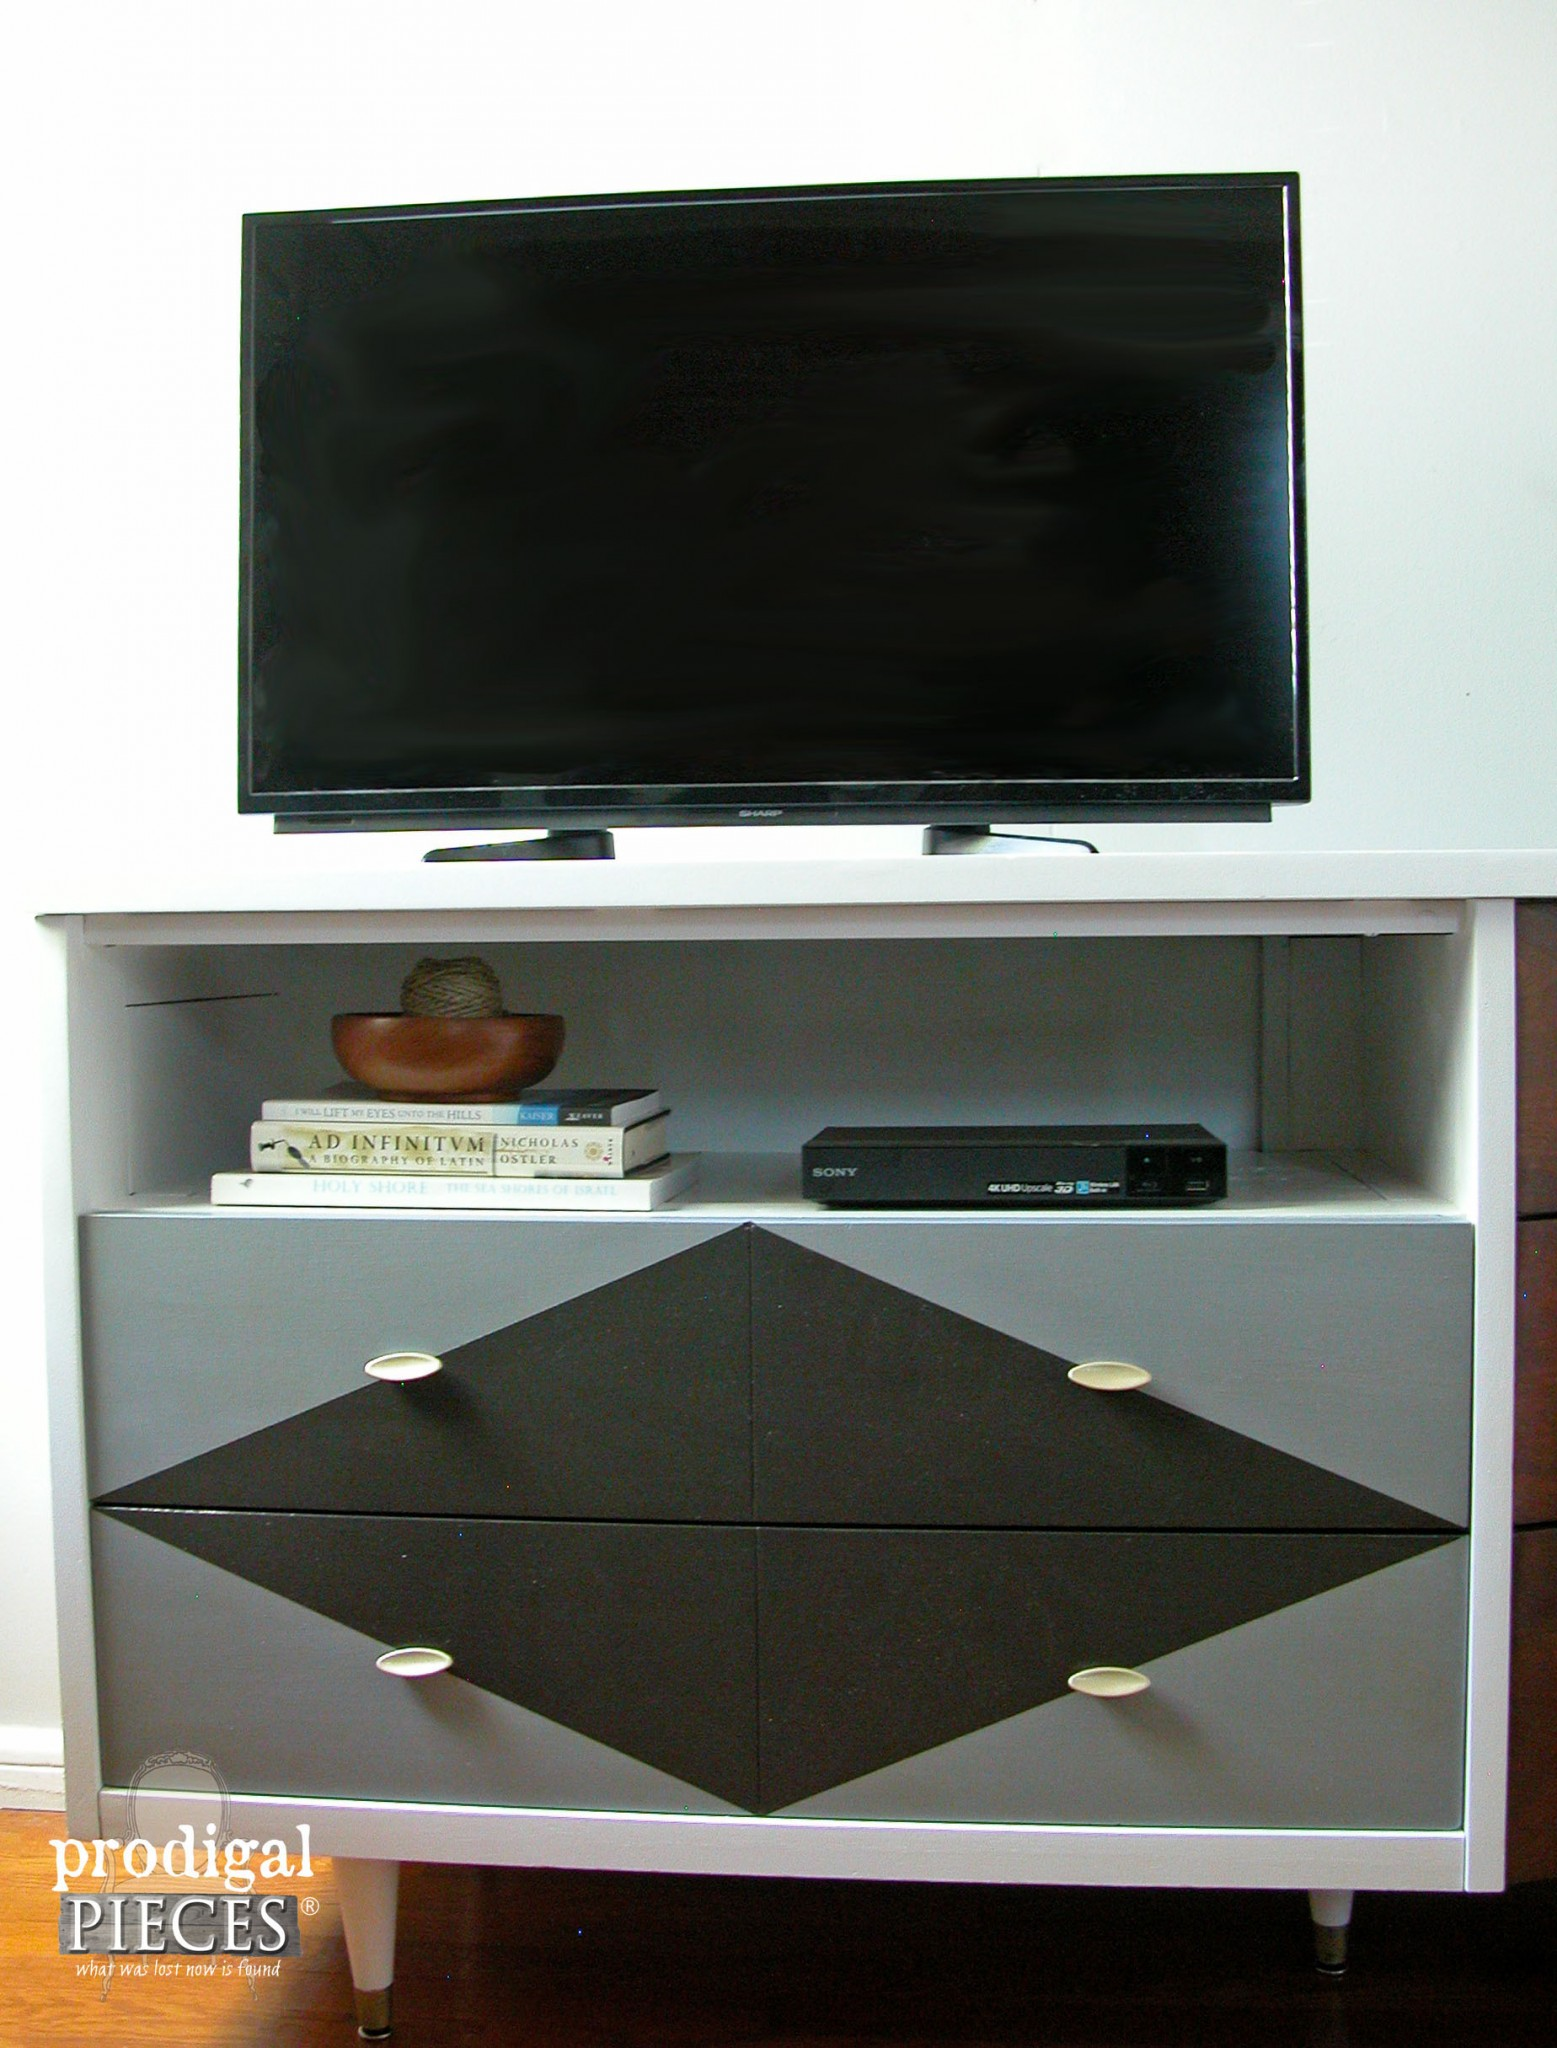 Geometric Painted Drawers on Mid Century Entertainment Console | Prodigal Pieces | www.prodigalpieces.com